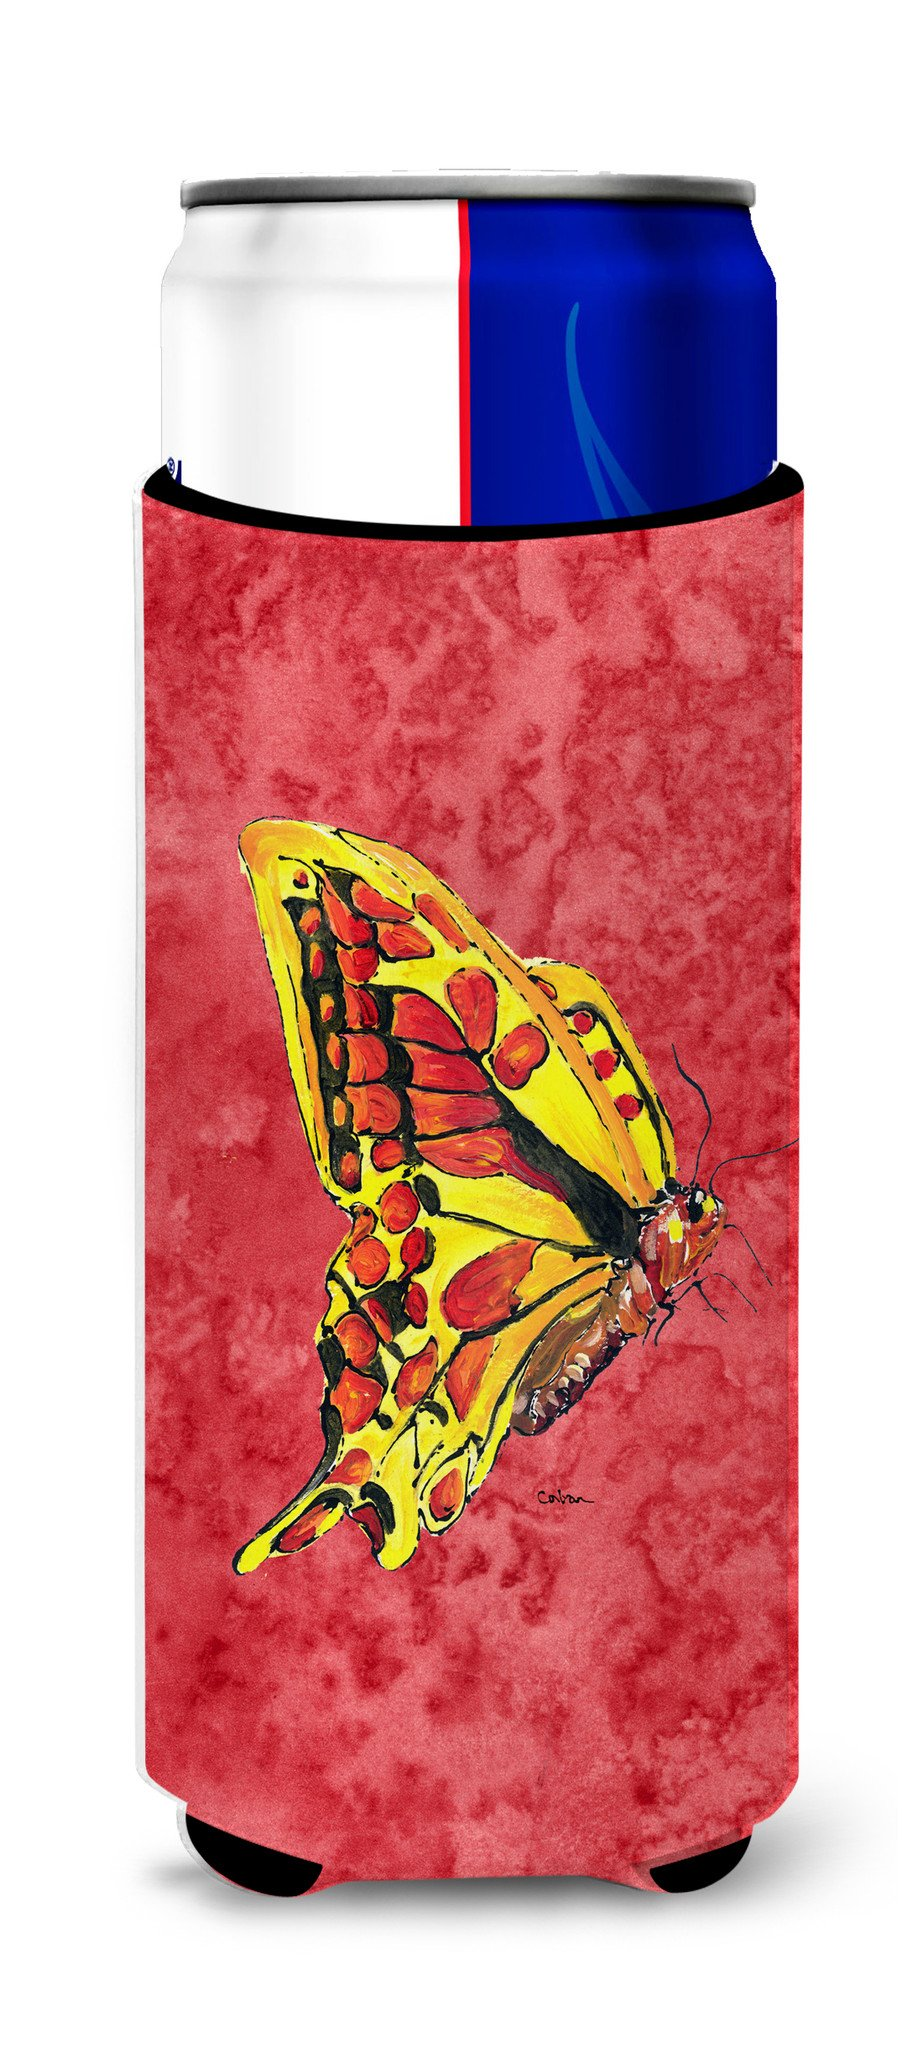 Butterfly on Red Ultra Beverage Insulators for slim cans 8862MUK - the-store.com